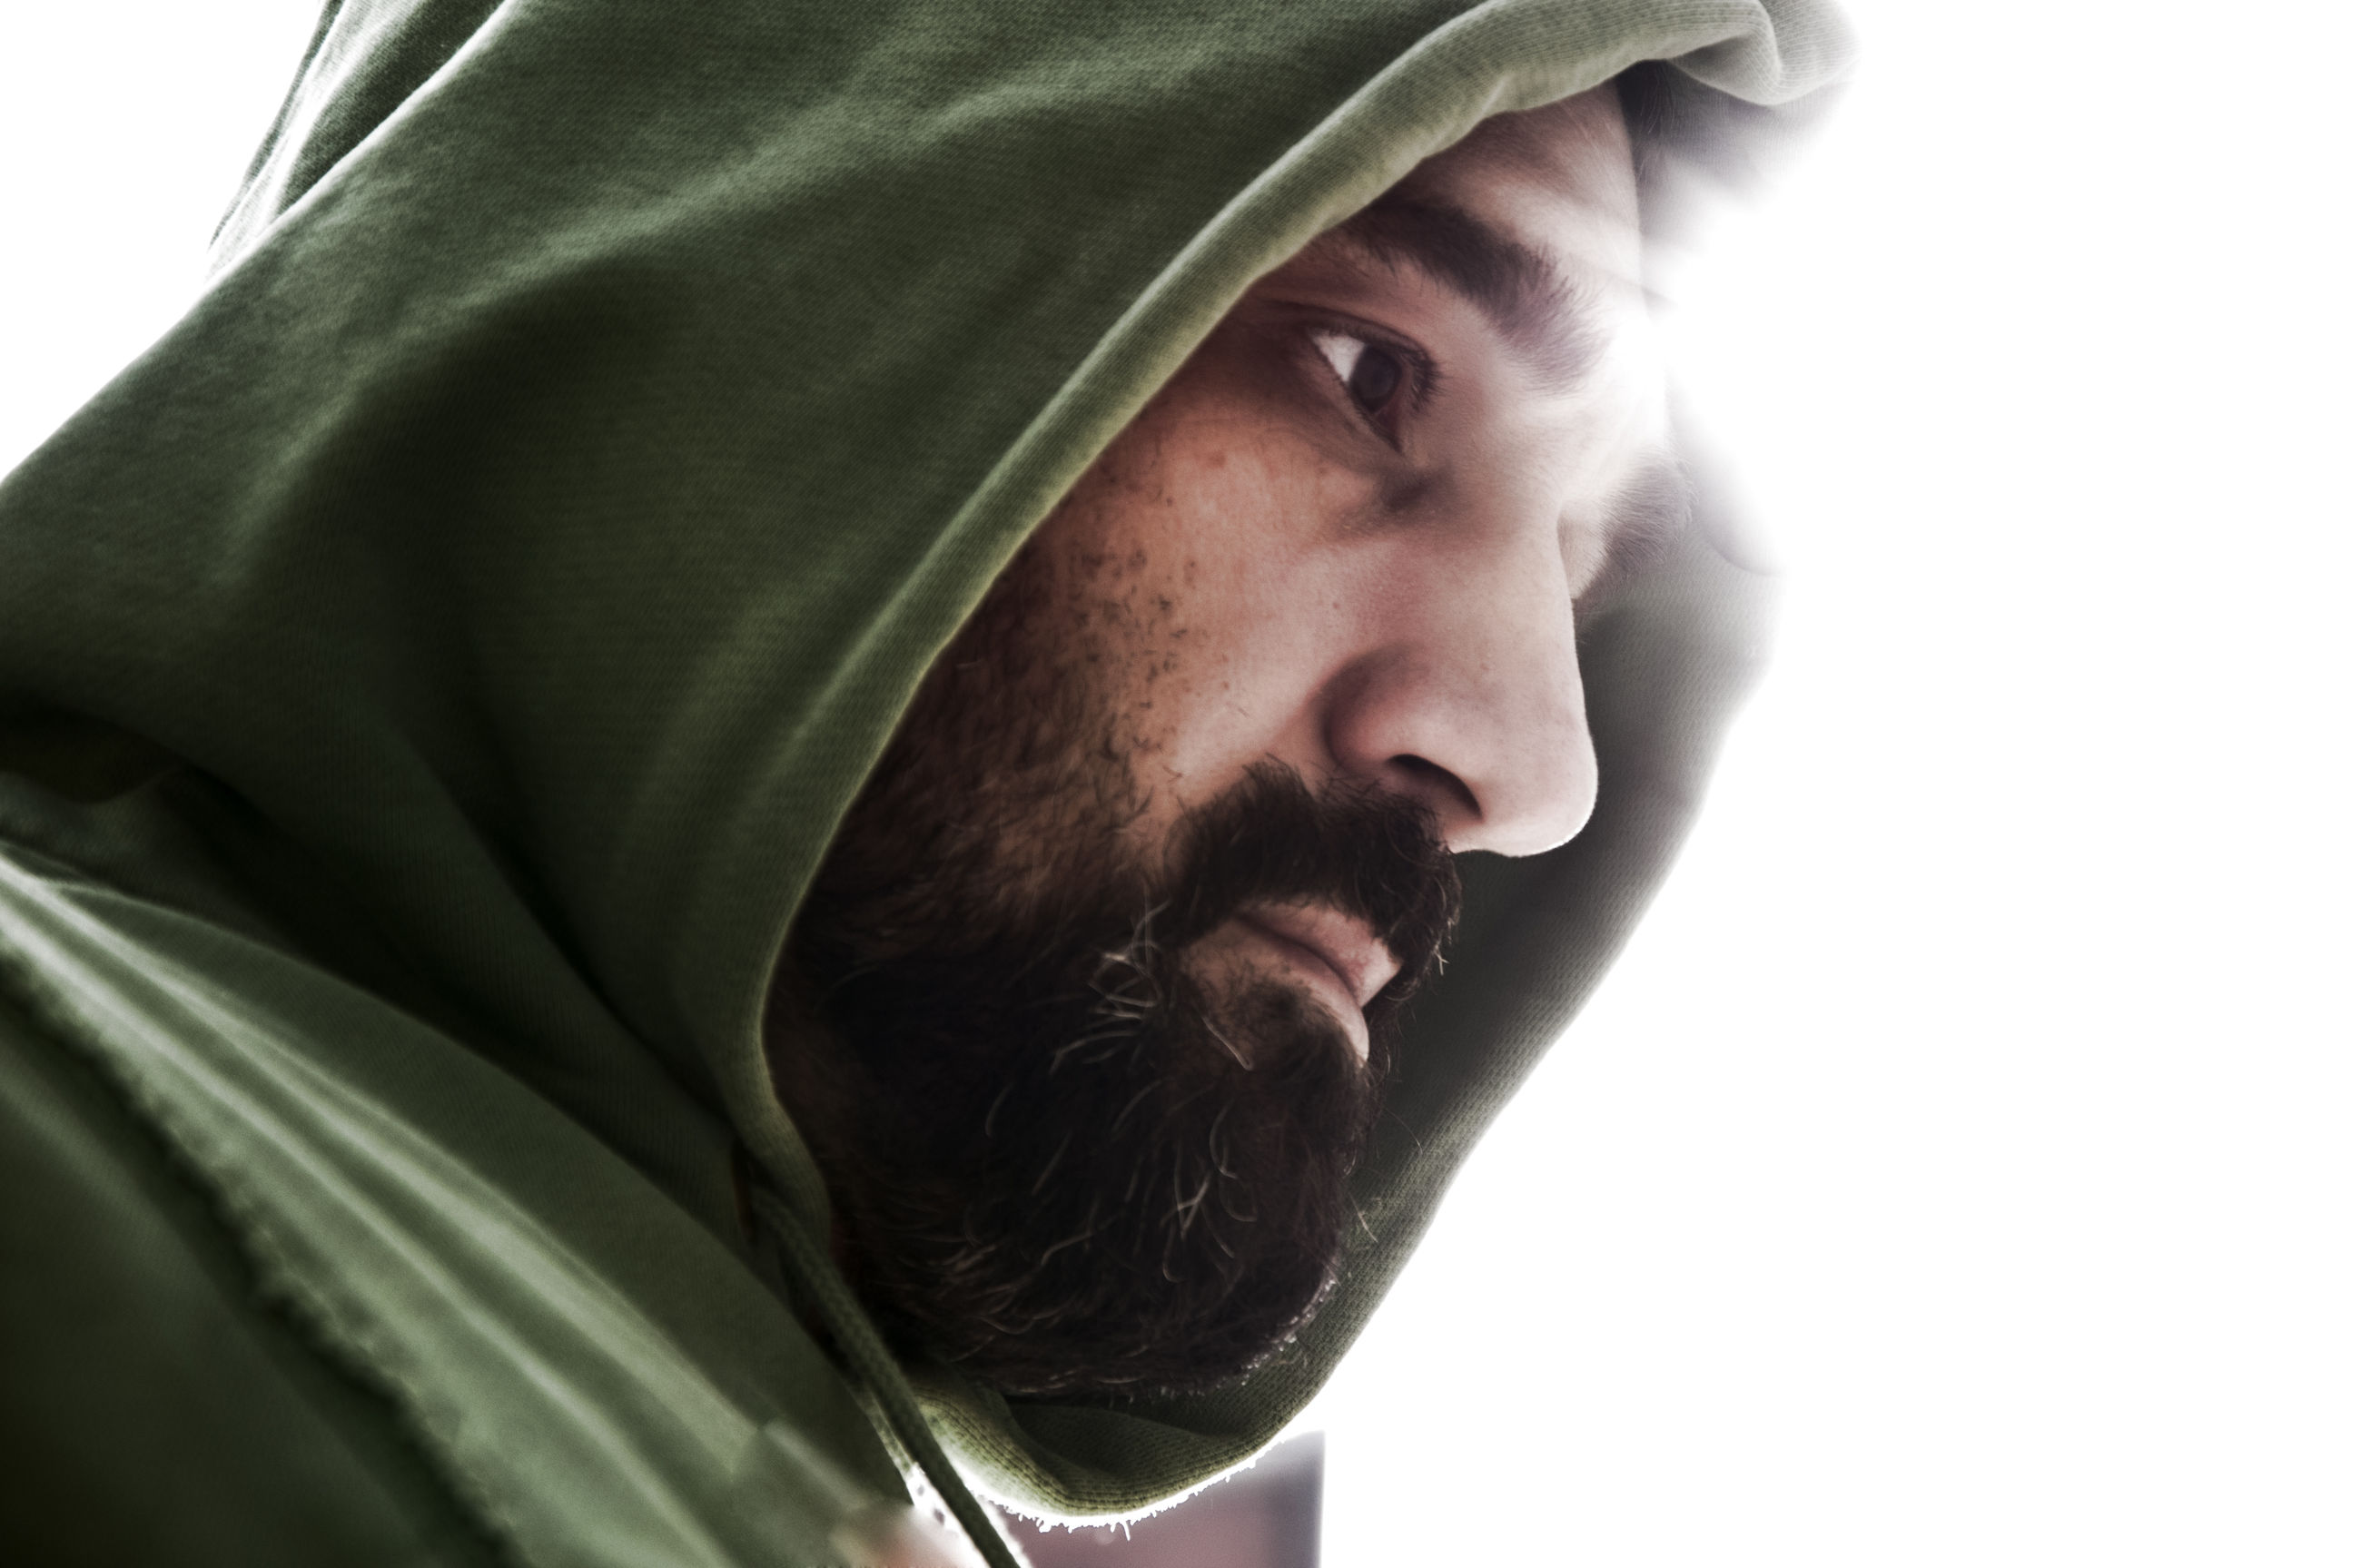 Close-up of man wearing hooded clothing